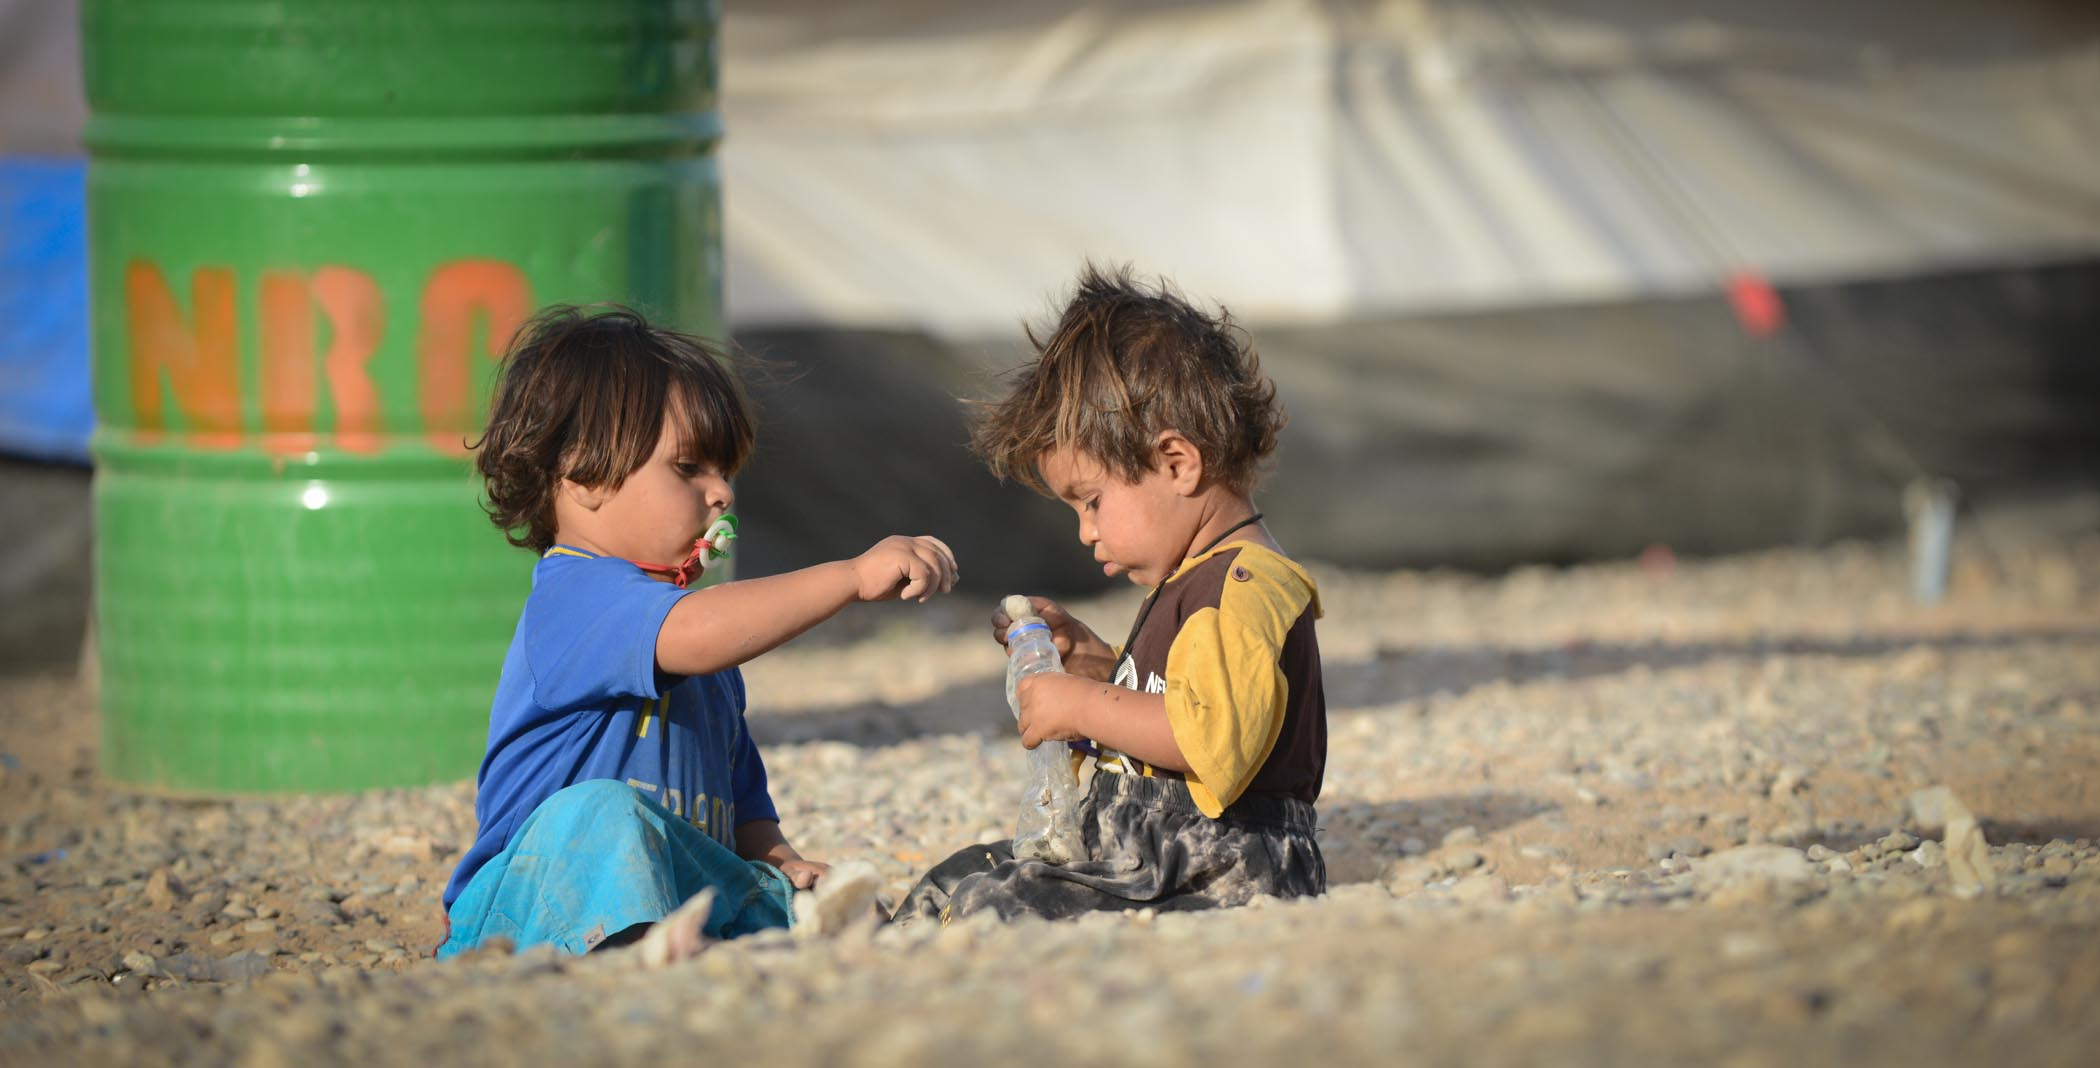 Two Babies Playing With An Old Plastic Bottle In The Baharka Refugee Camp In Erbil